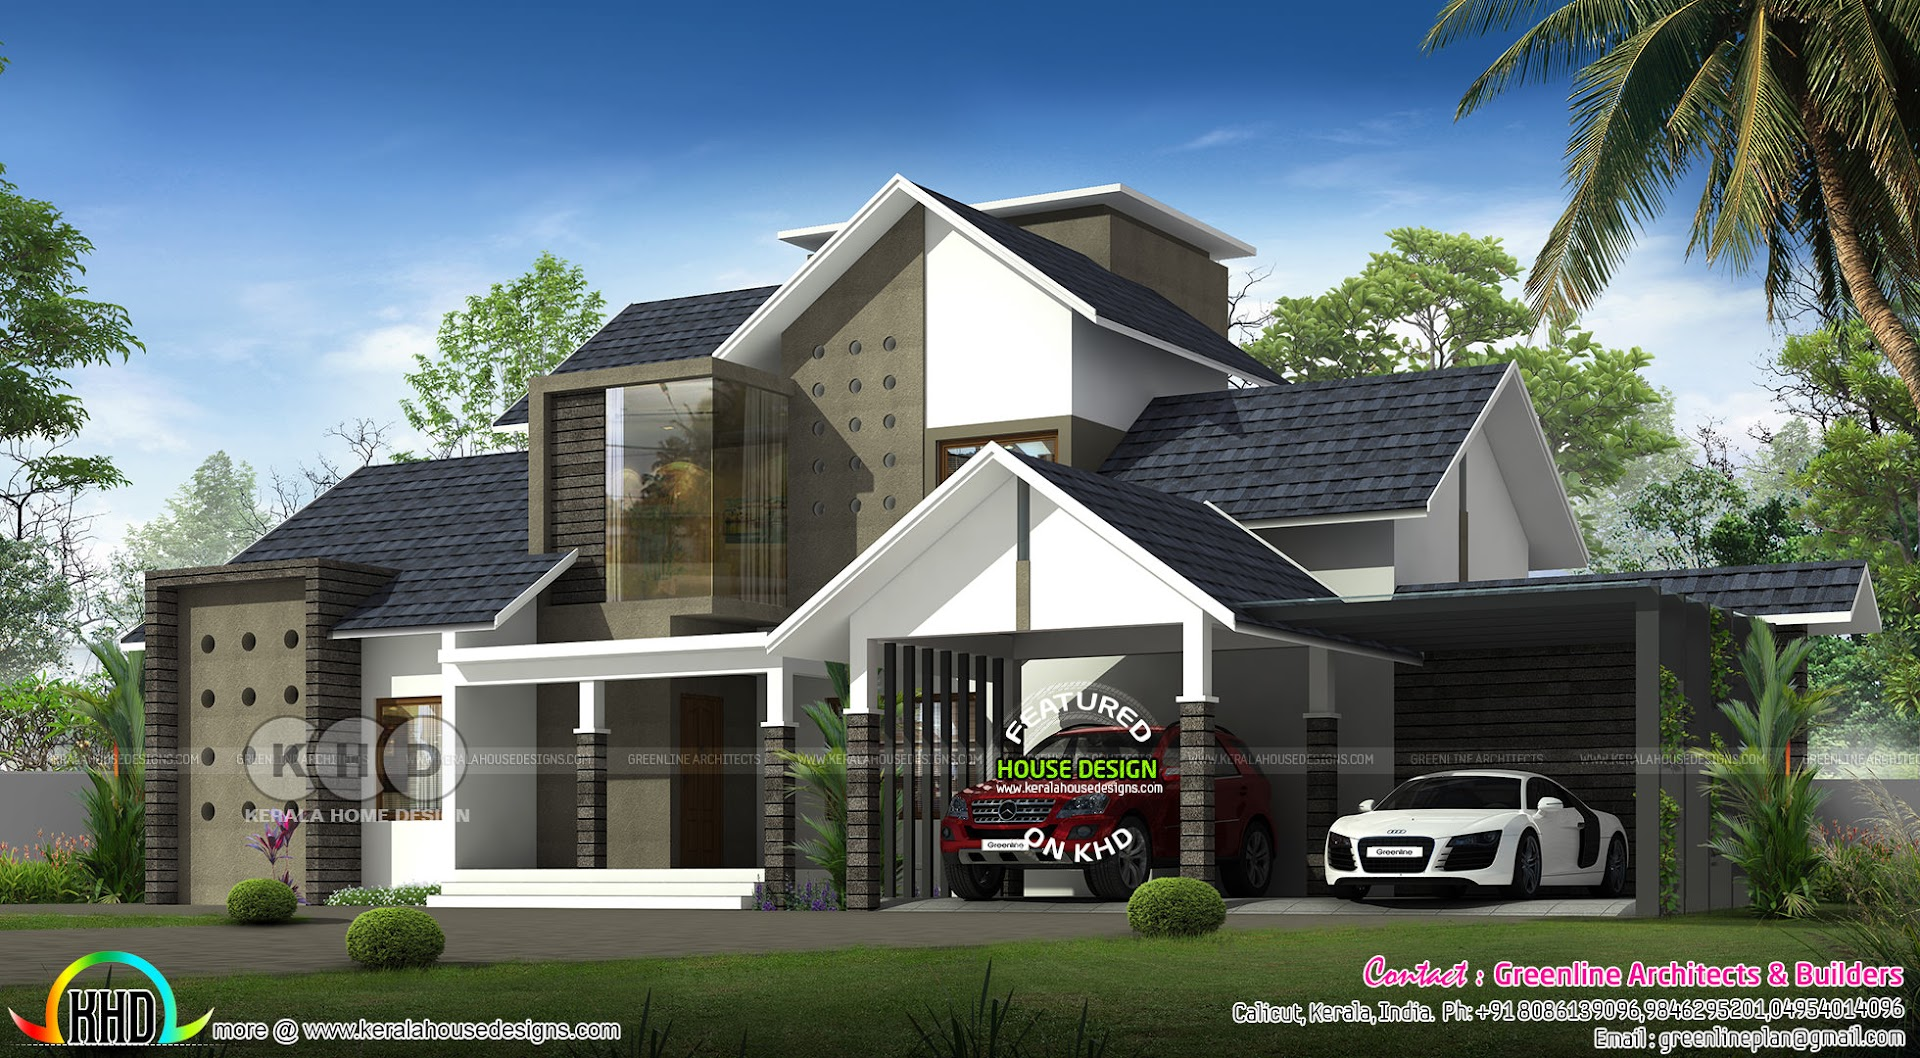 4 Bedroom Ultra Modern Sloping Roof Home Design Kerala Home Design And Floor Plans 8000 Houses